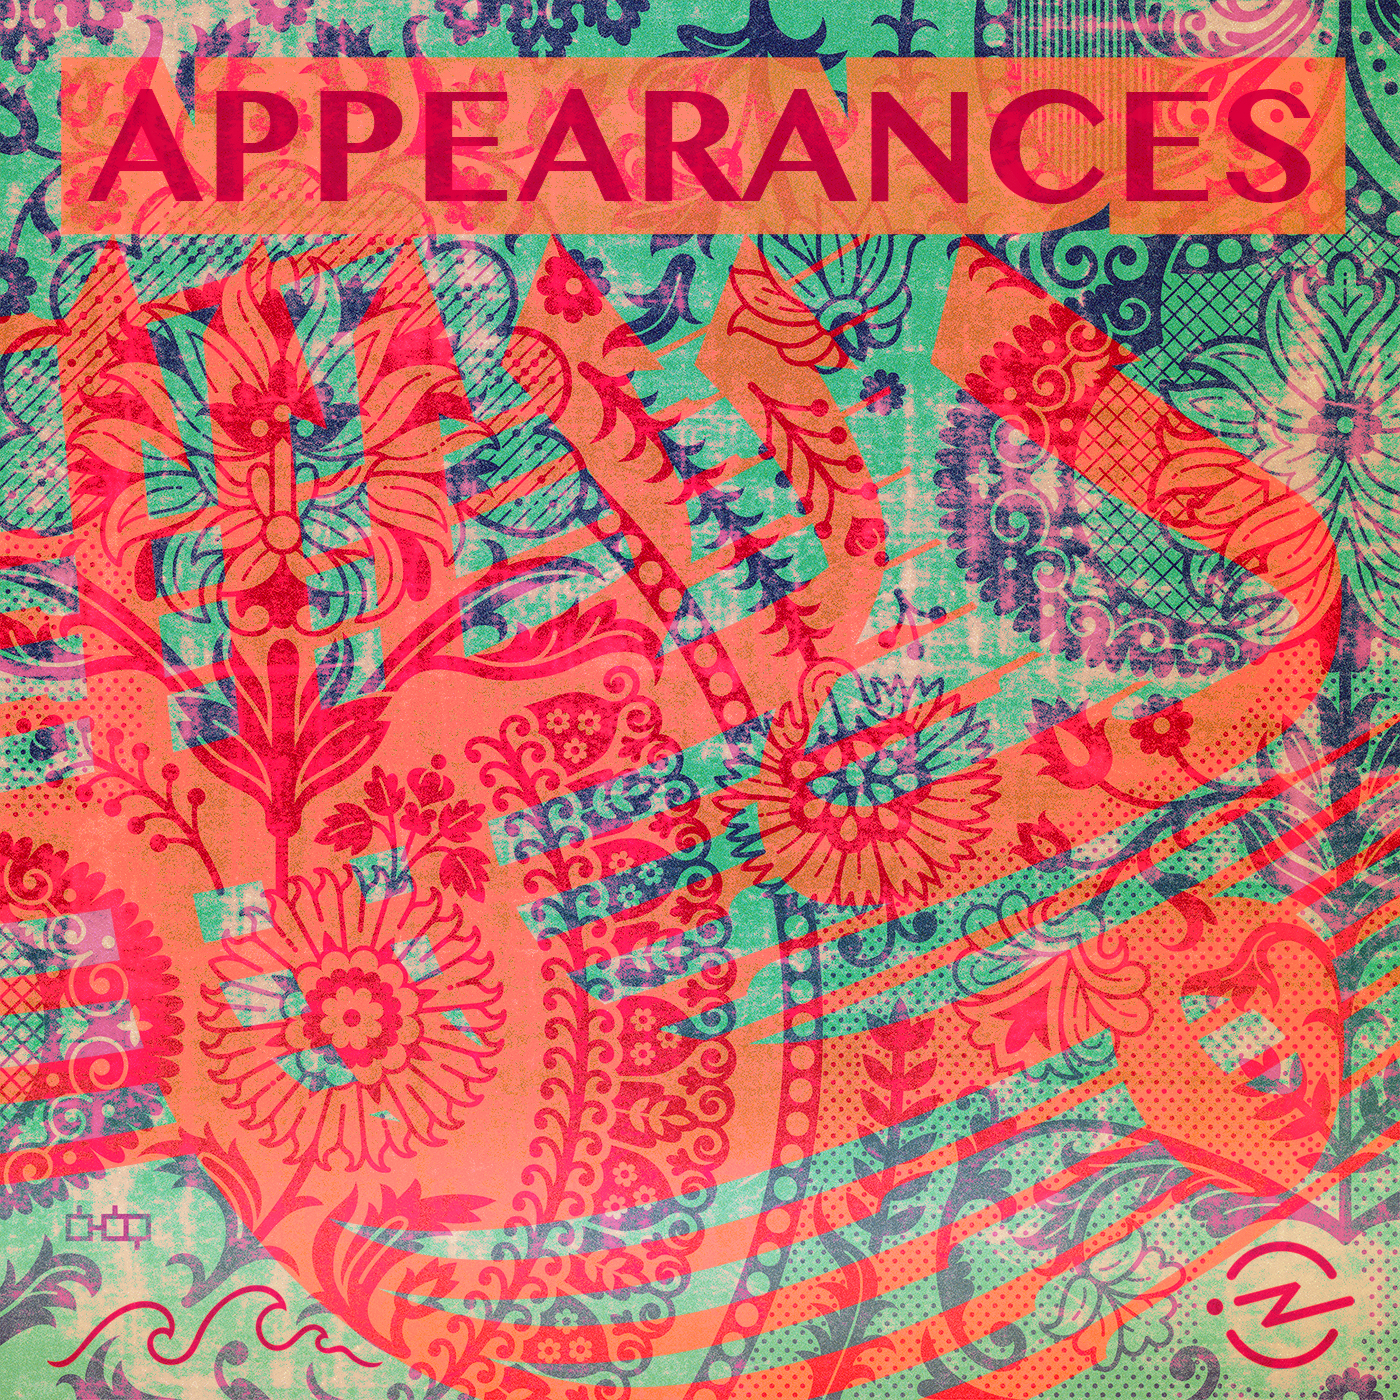 Appearances podcast show image